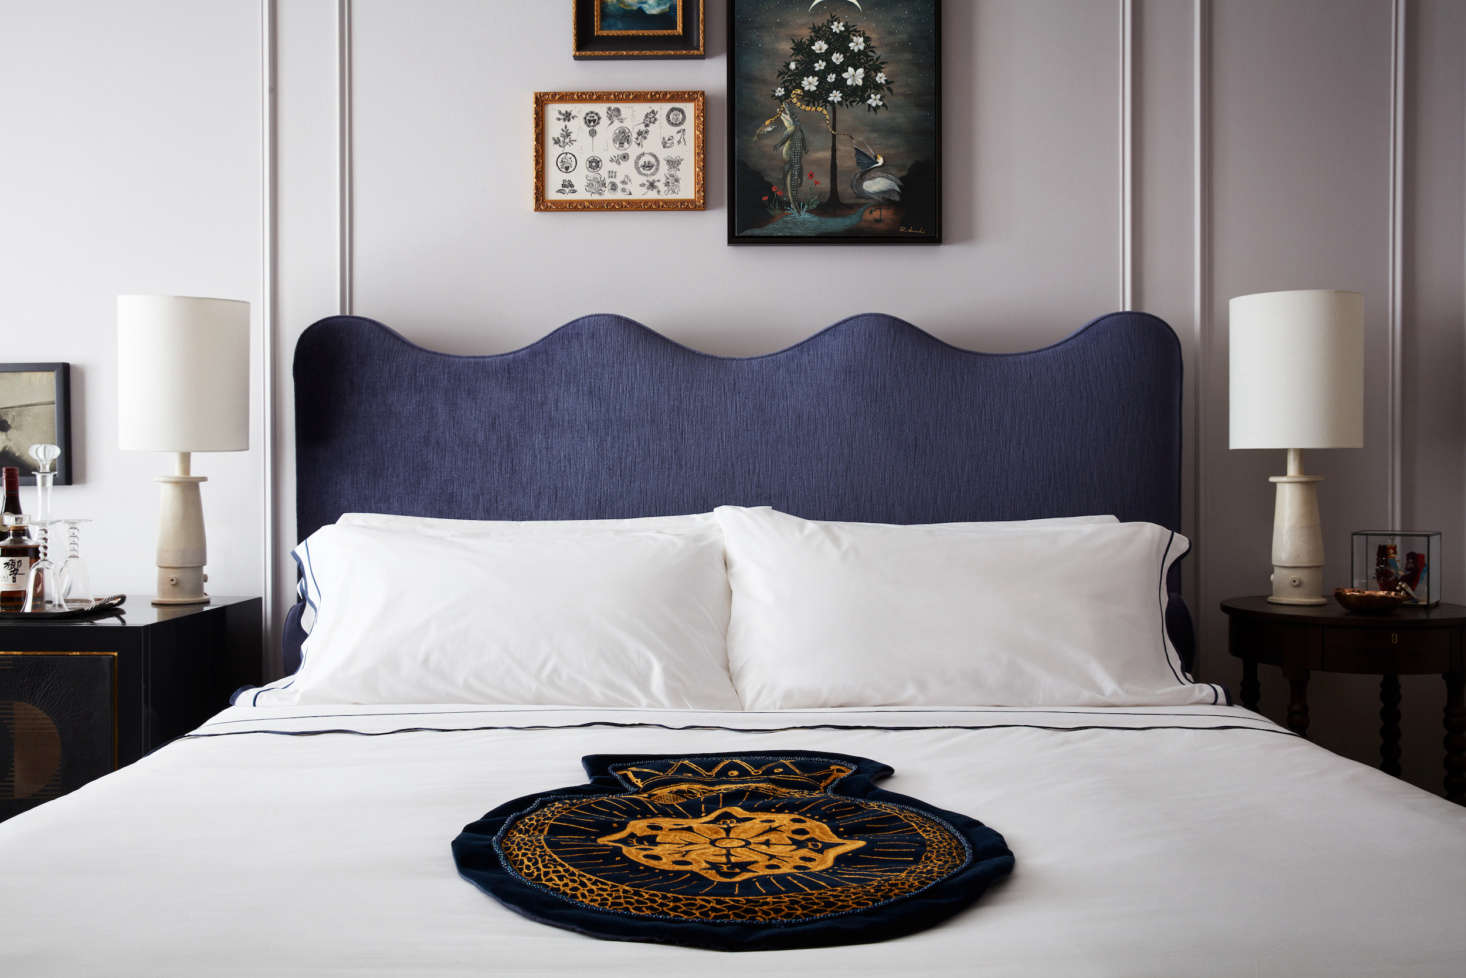 Guest beds are laid with regal-looking cloth crests.